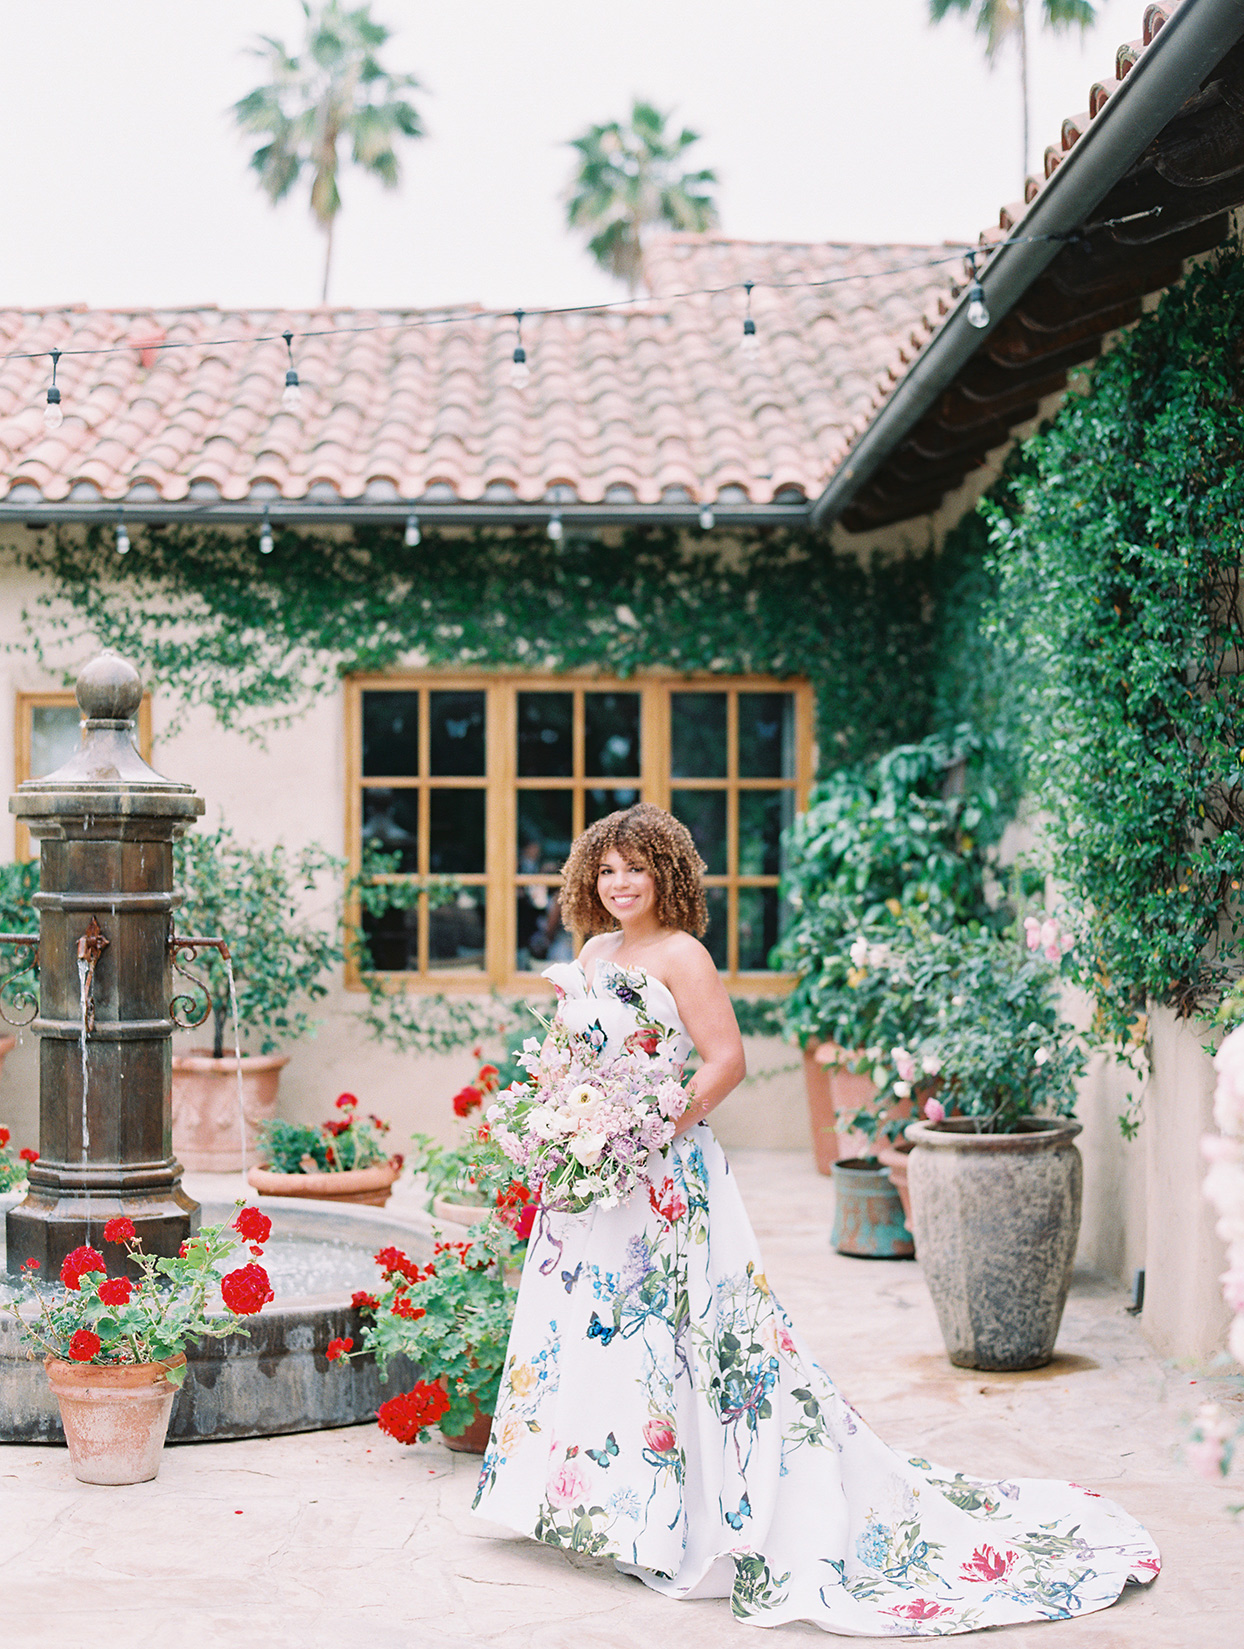 raina salih bride in flowered dress courtyard